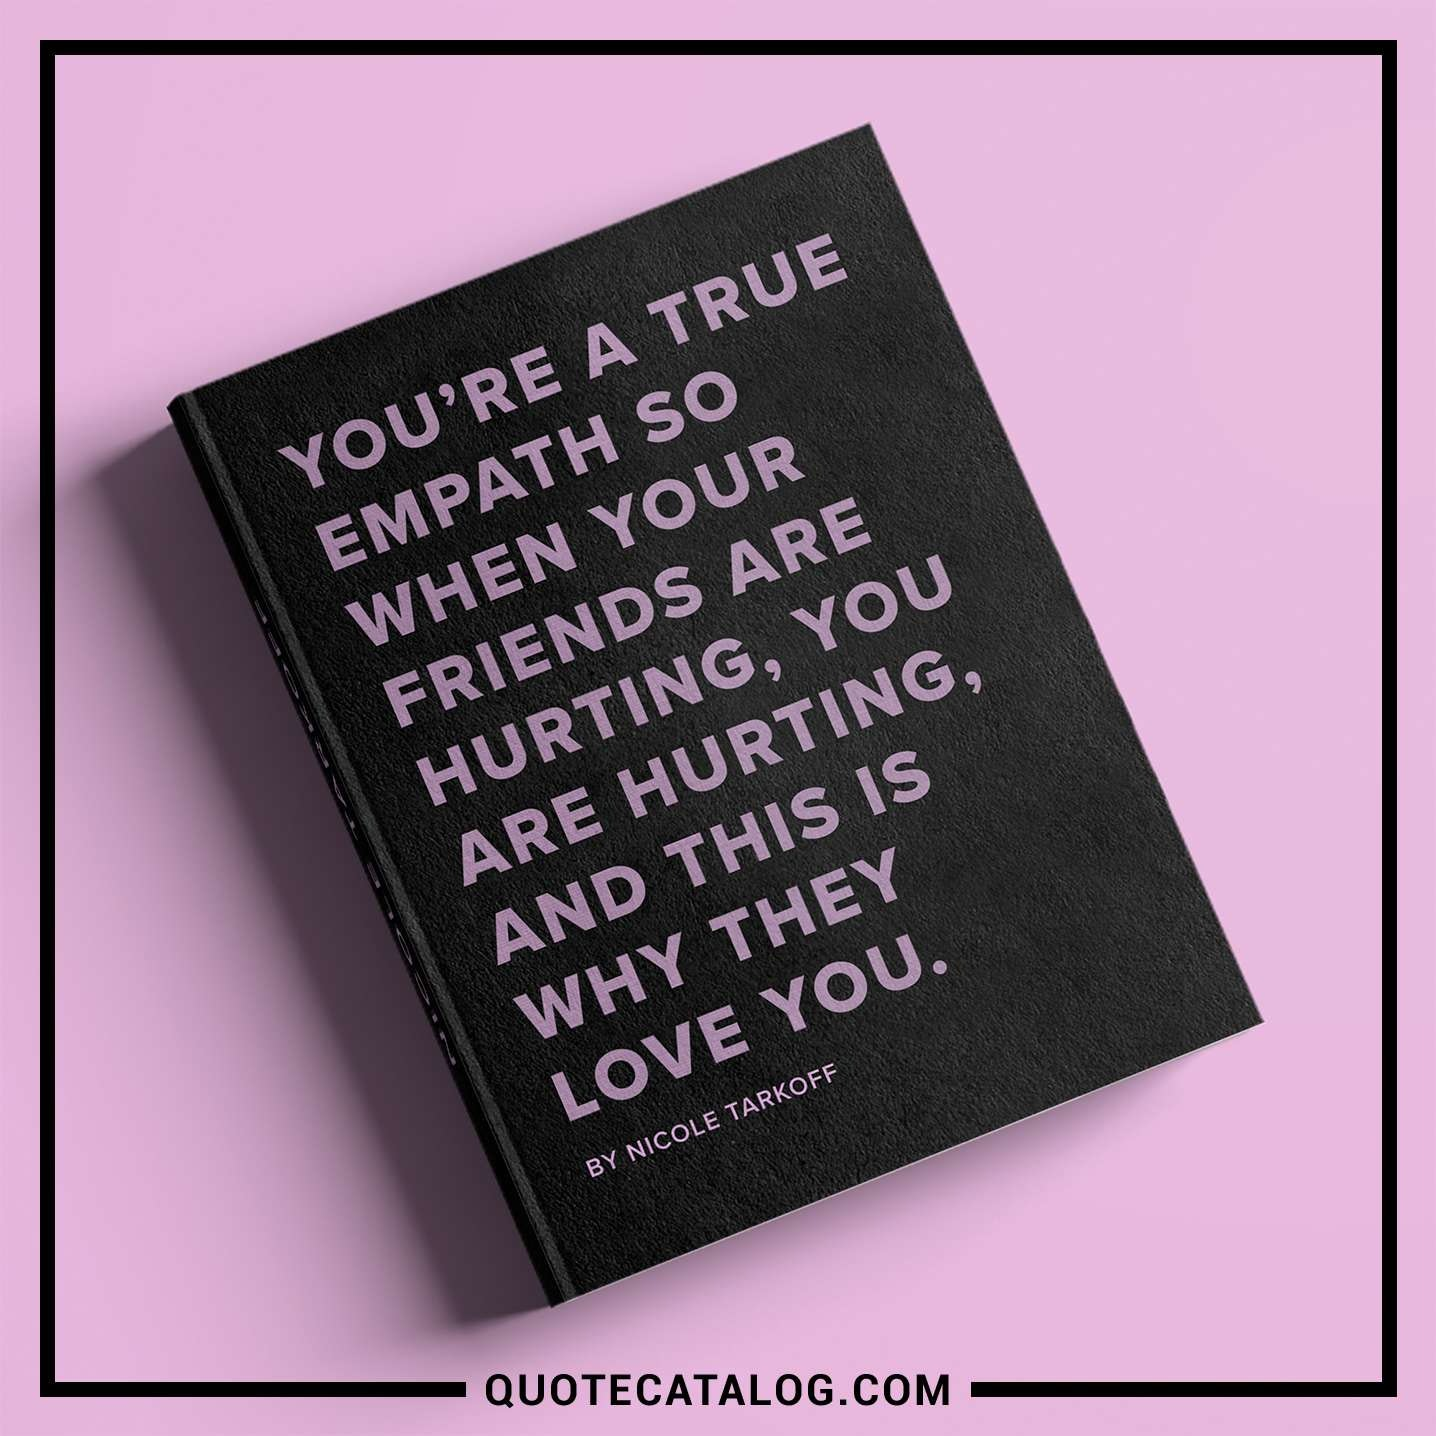 Youu0027re A True Empath So When Your Friends Are Hurting, You Are Hurting